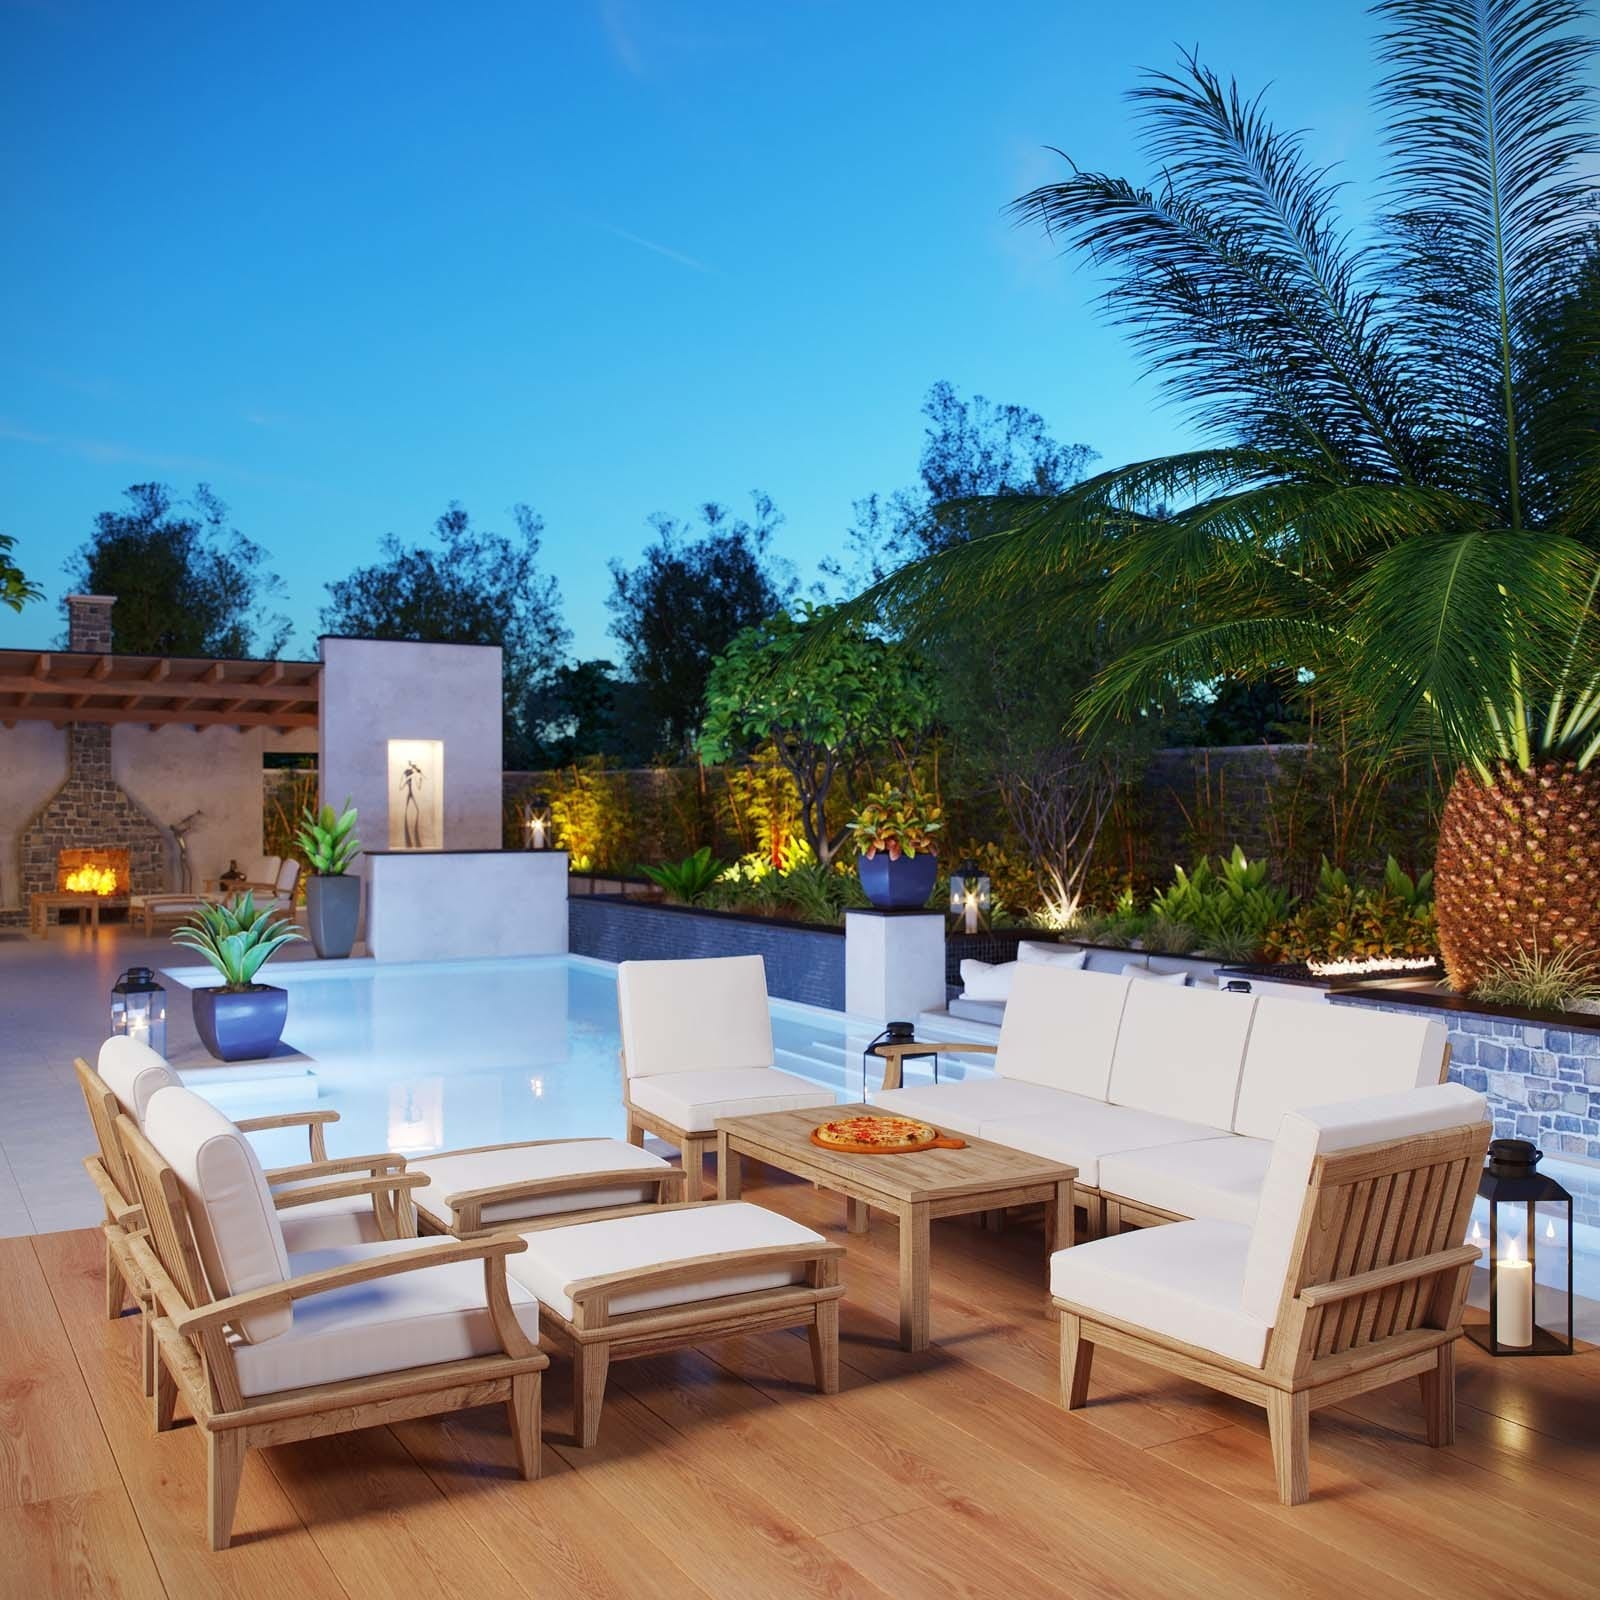 Teak Patio Furniture   Find Great Outdoor Seating & Dining Deals ...